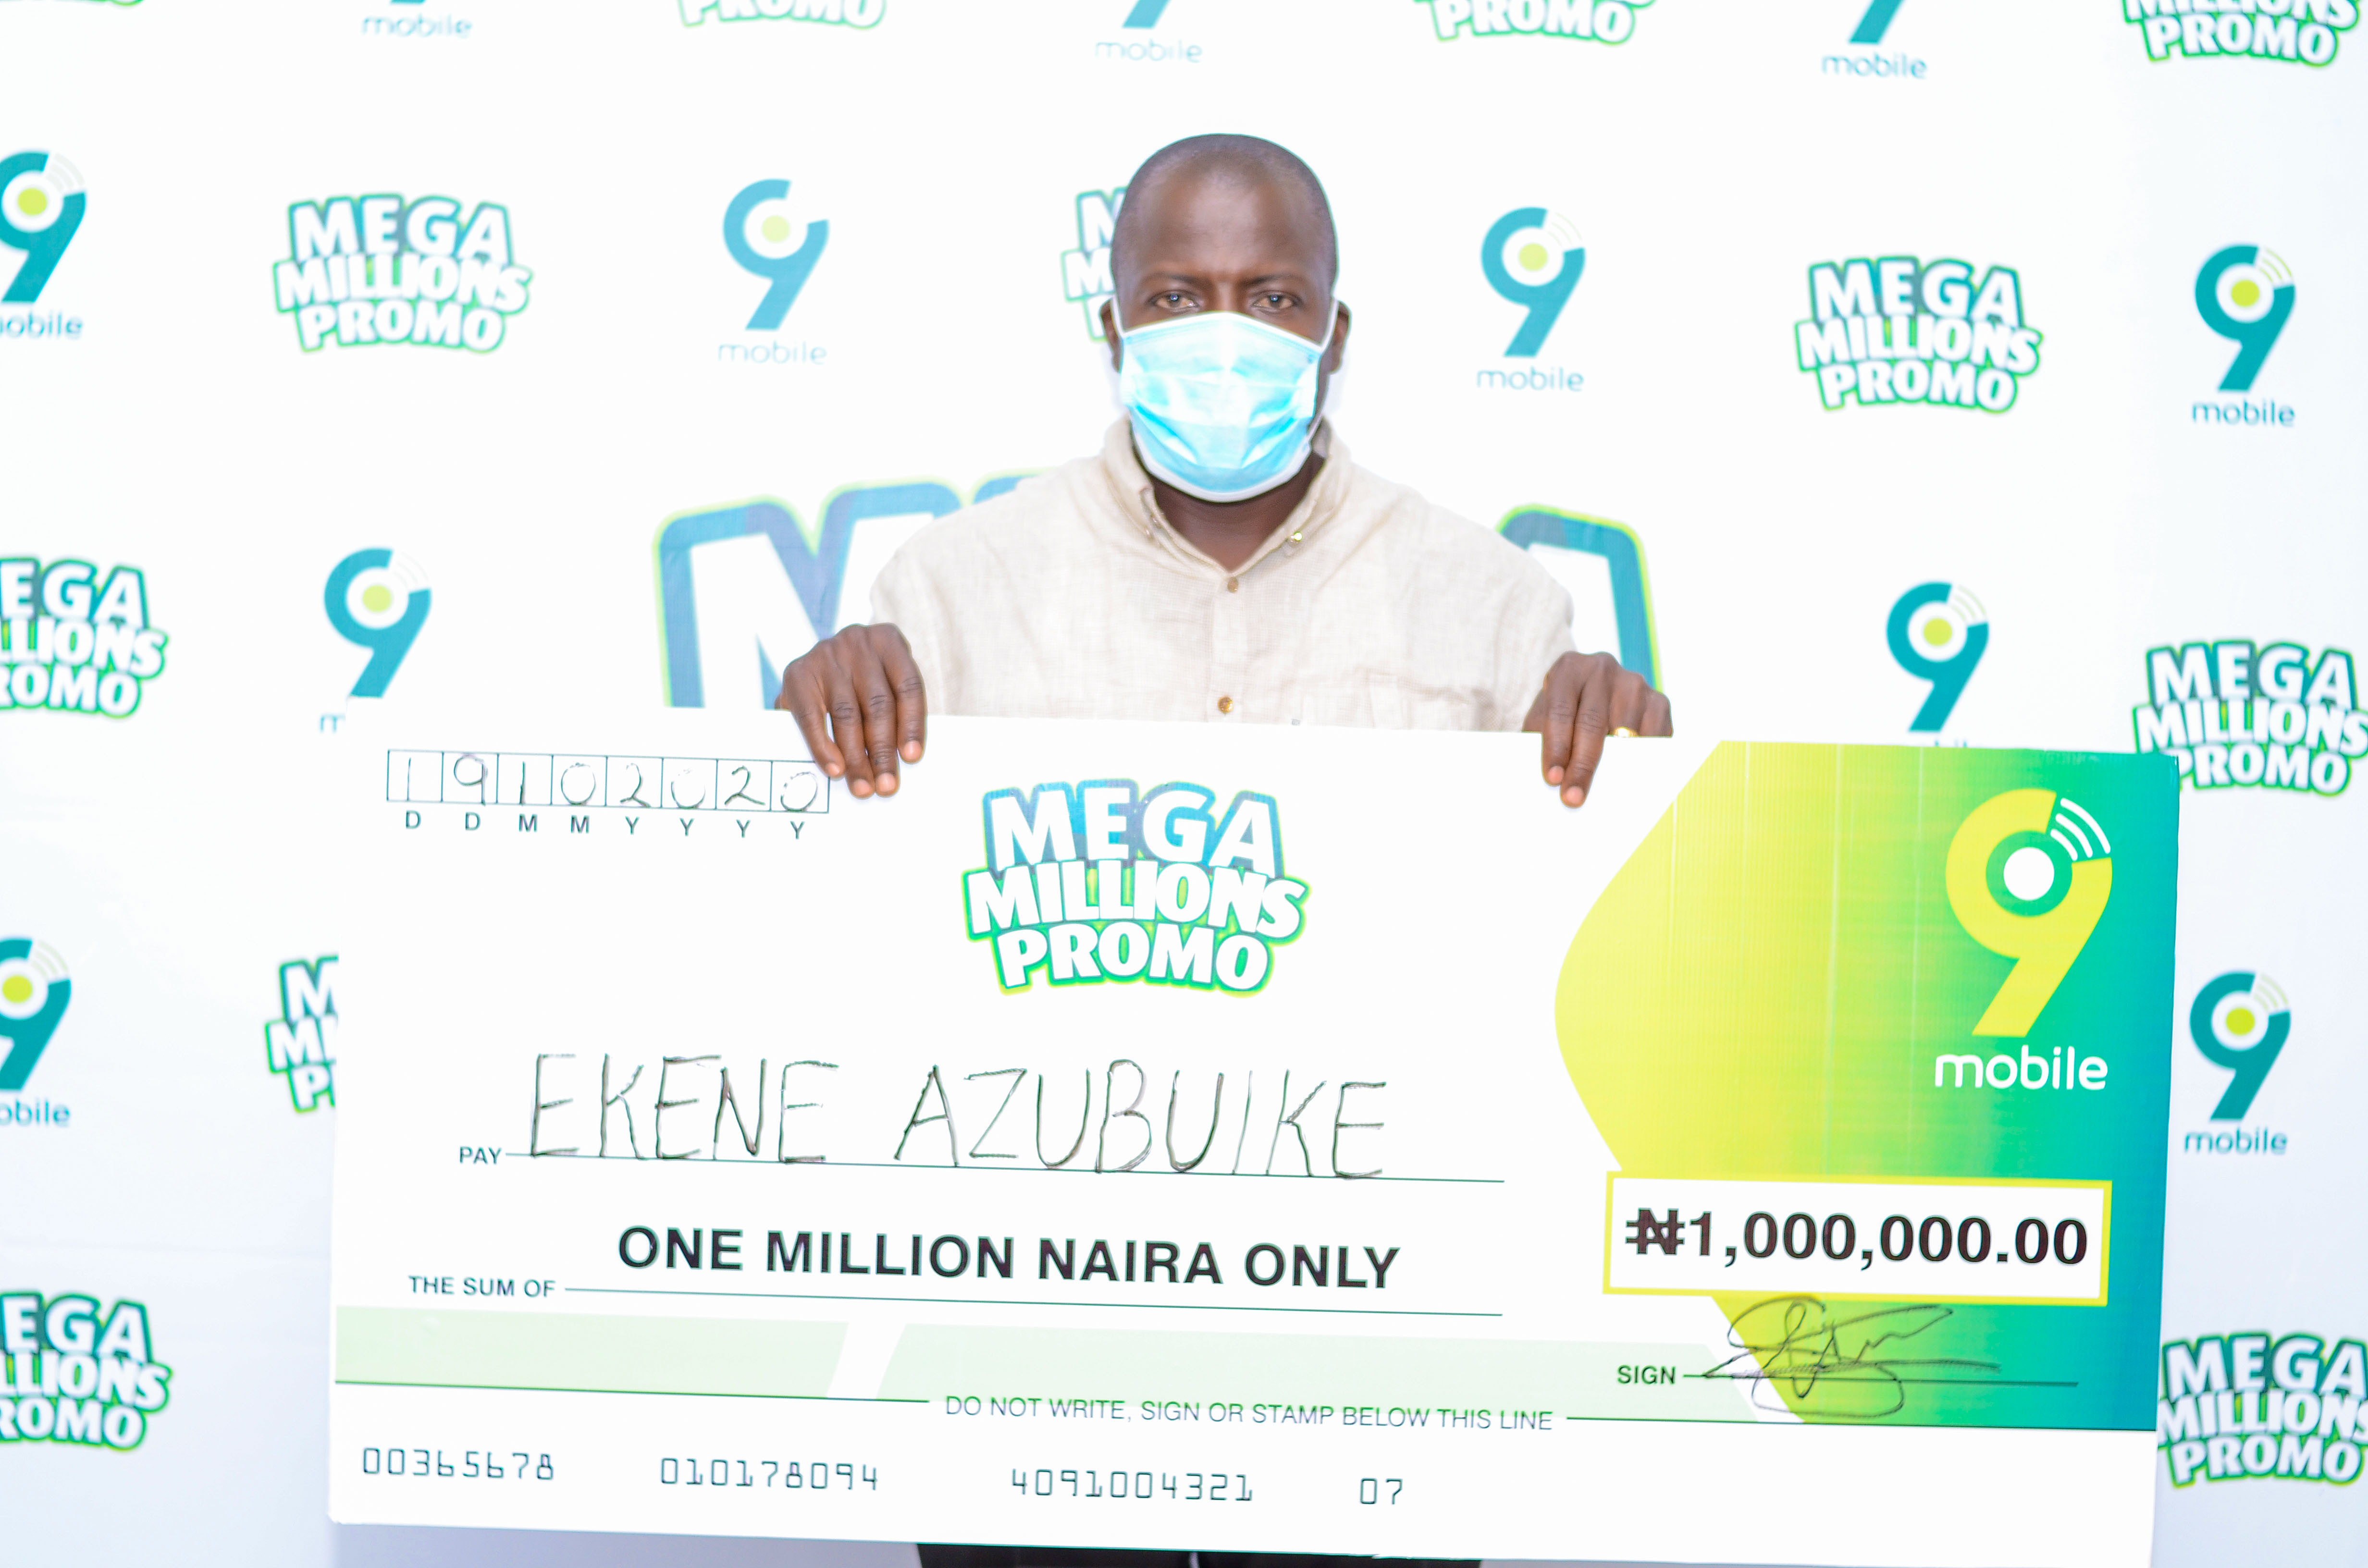 Business Owners Receive Huge Financial Boost with winnings from 9mobile Mega Millions Promo